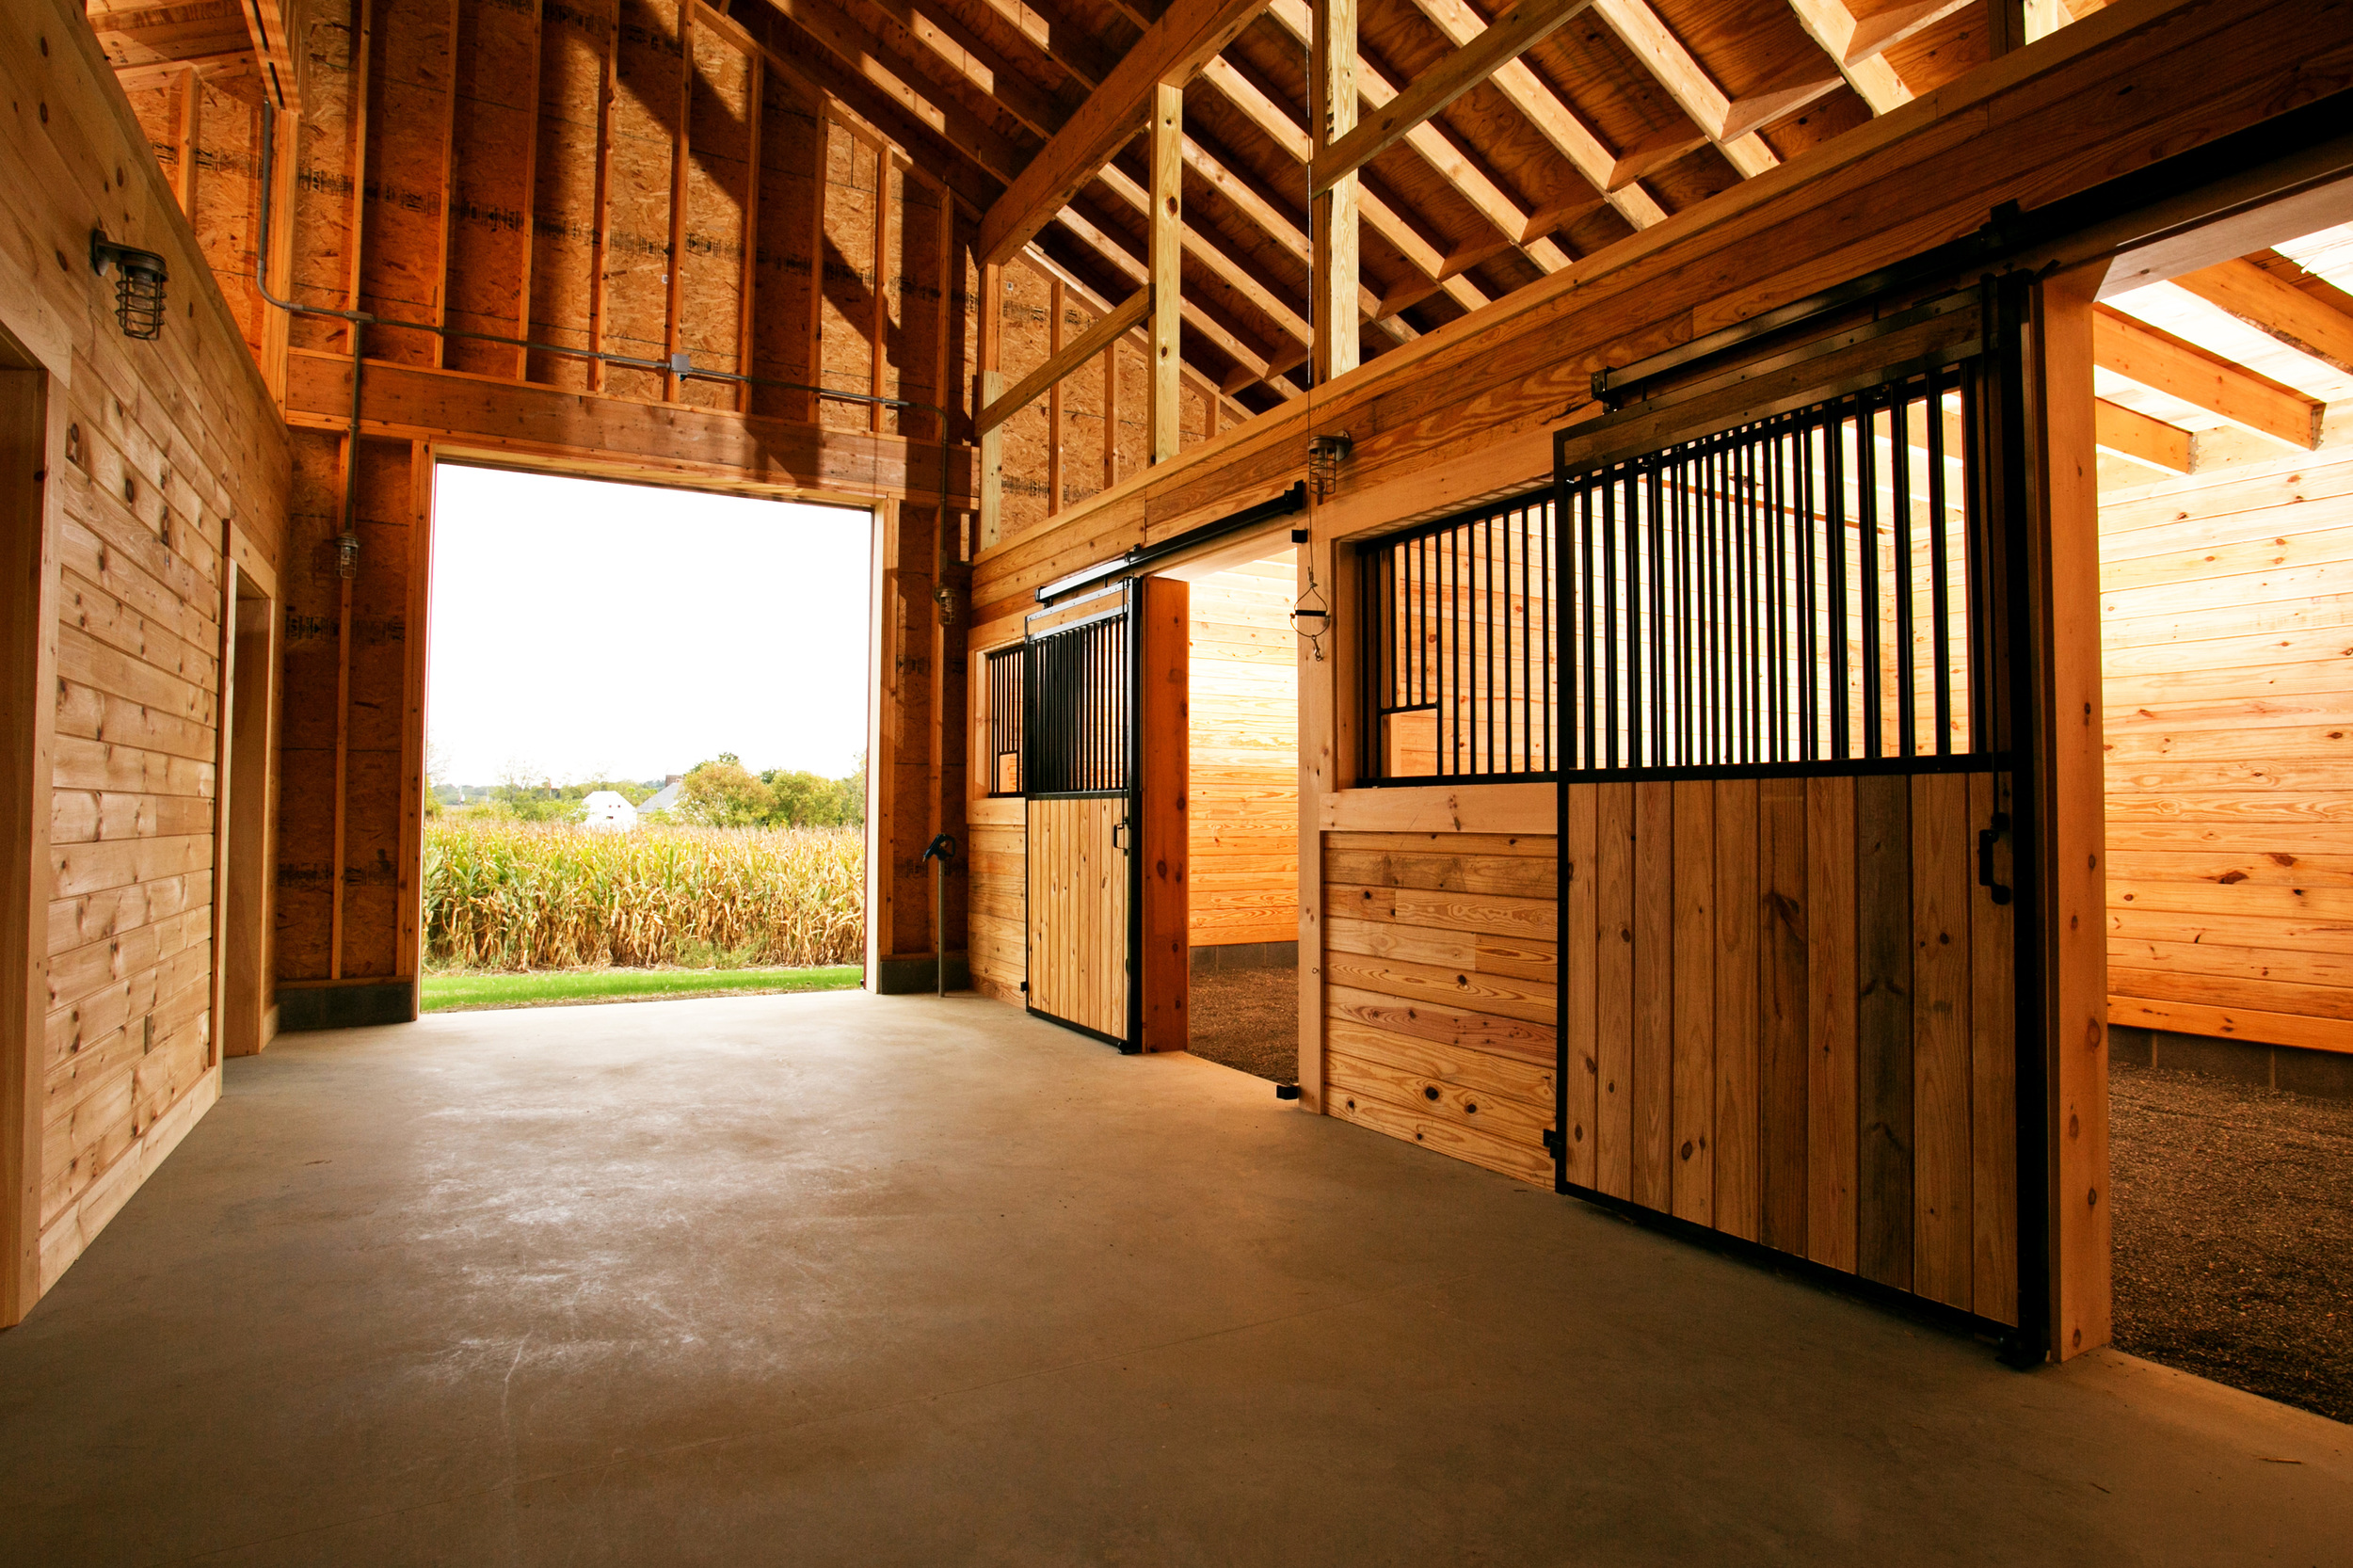 Main Barn- NRG_5122(12x18) - edit.jpg